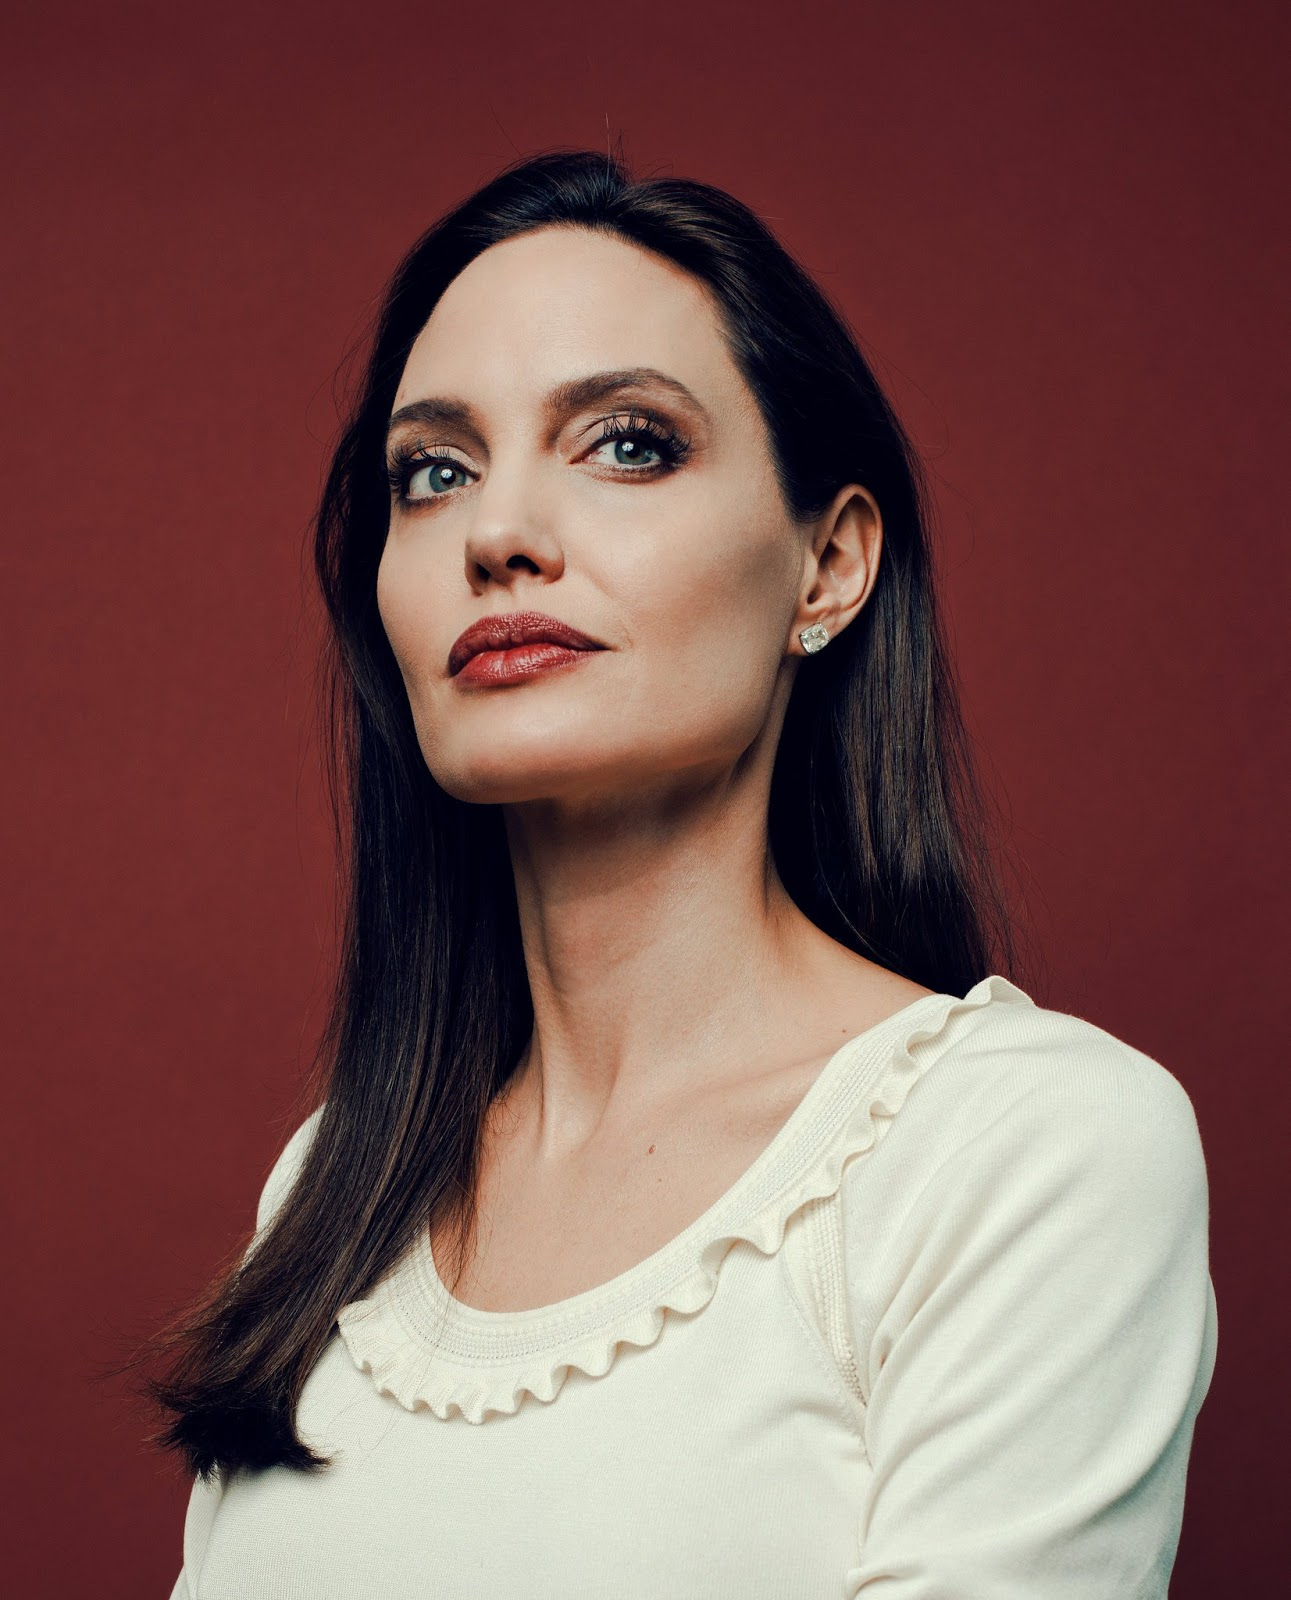 Angelina Jolie em entrevista para o The New York Times Angelina Jolie